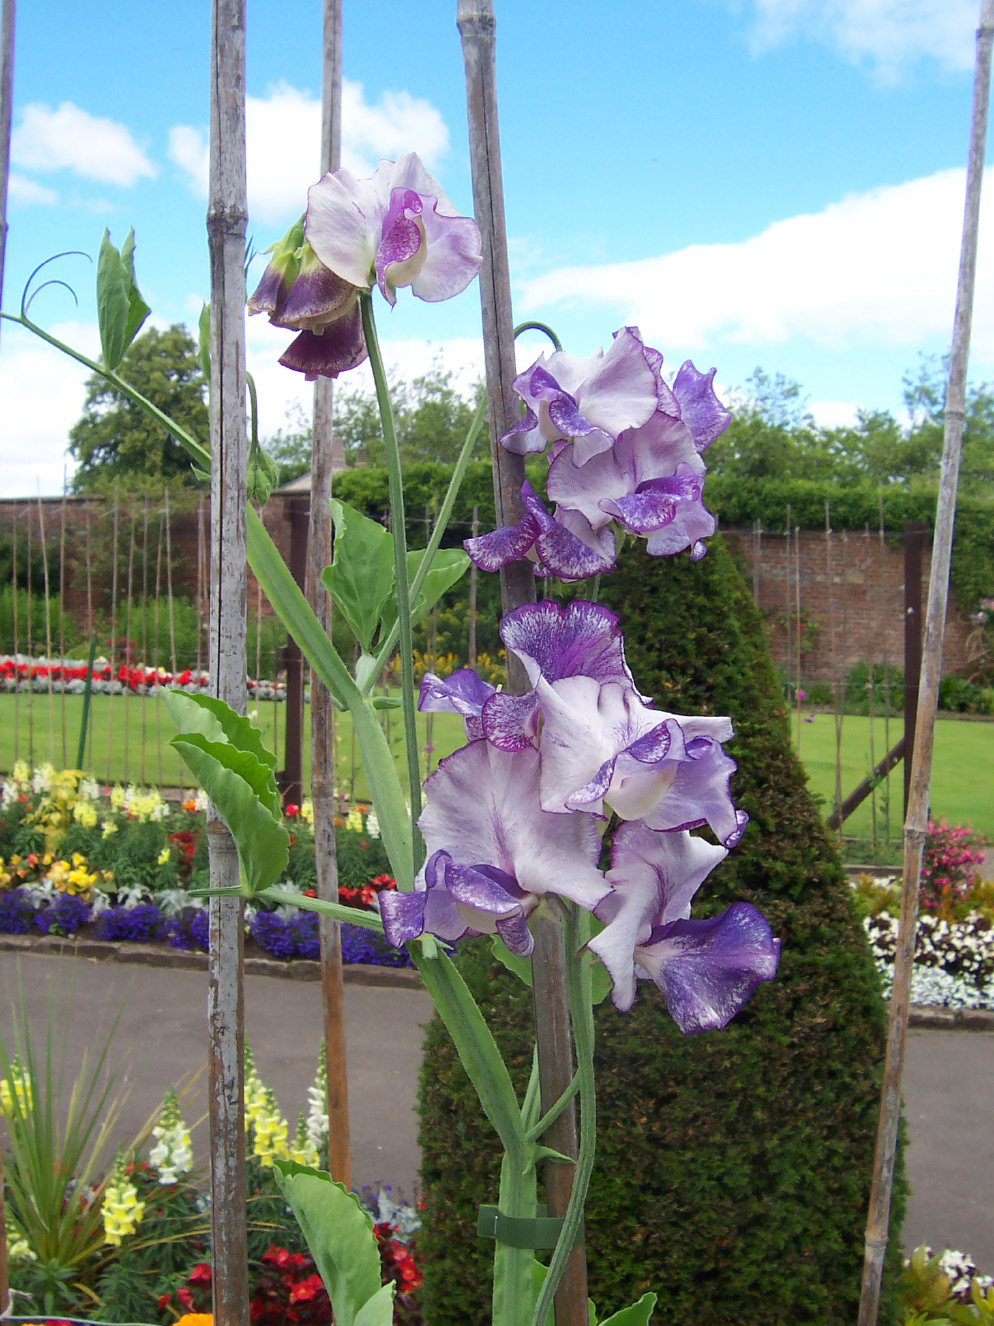 Surely, the sweet pea, Lathyrus odoratus, must be one of the world's most famous flowers